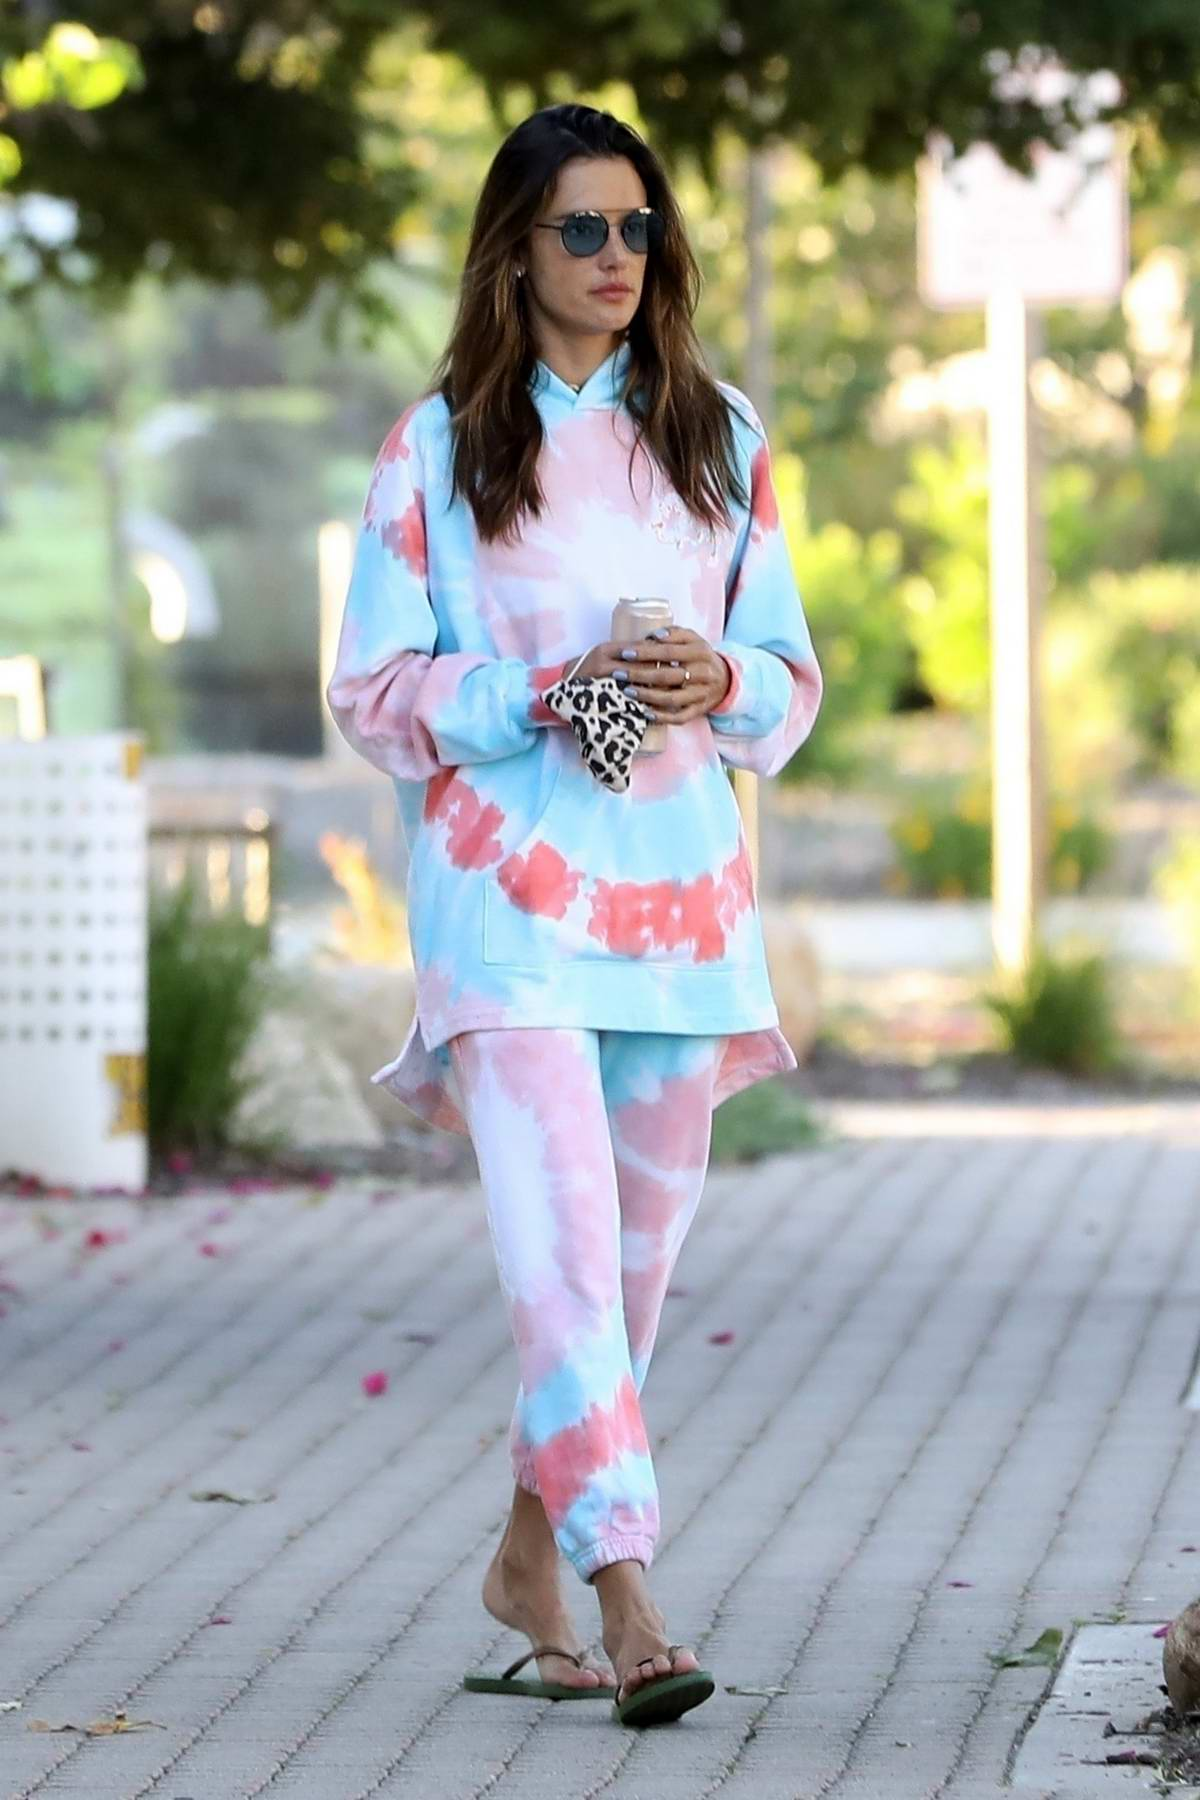 Alessandra Ambrosio rocks tie-dye sweatsuit as she steps out to pick up some breakfast in Malibu, California